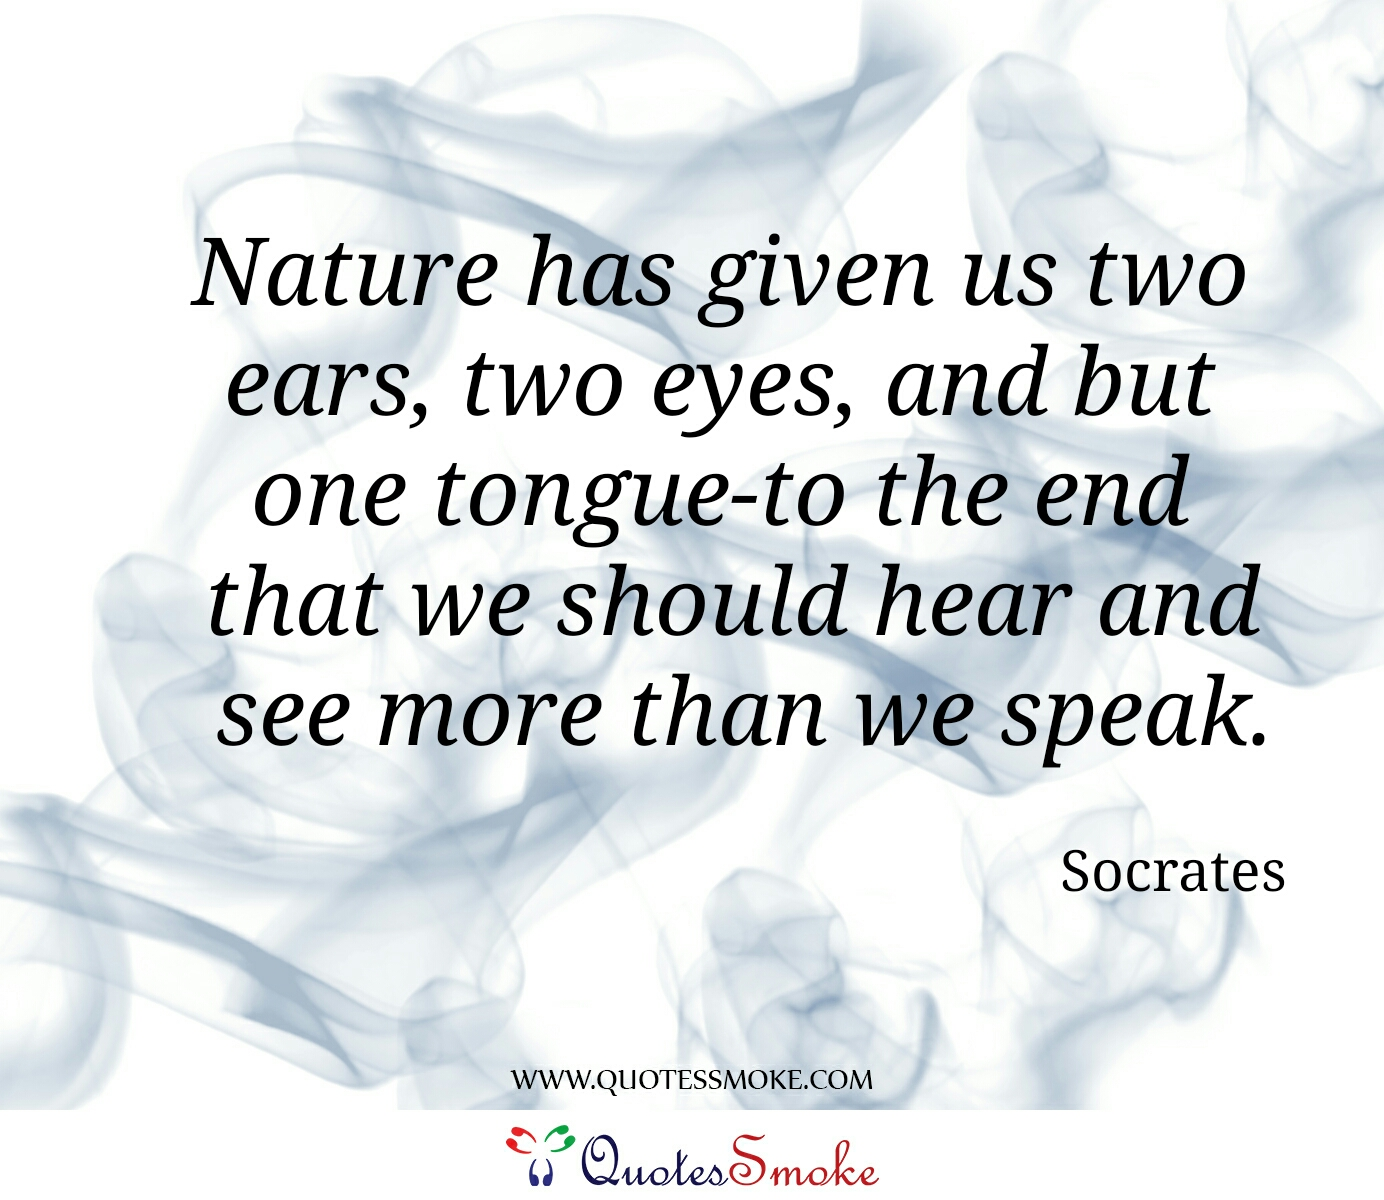 109 Wonderful Socrates Quotes Which Reflect Wisdom Quotes Smoke